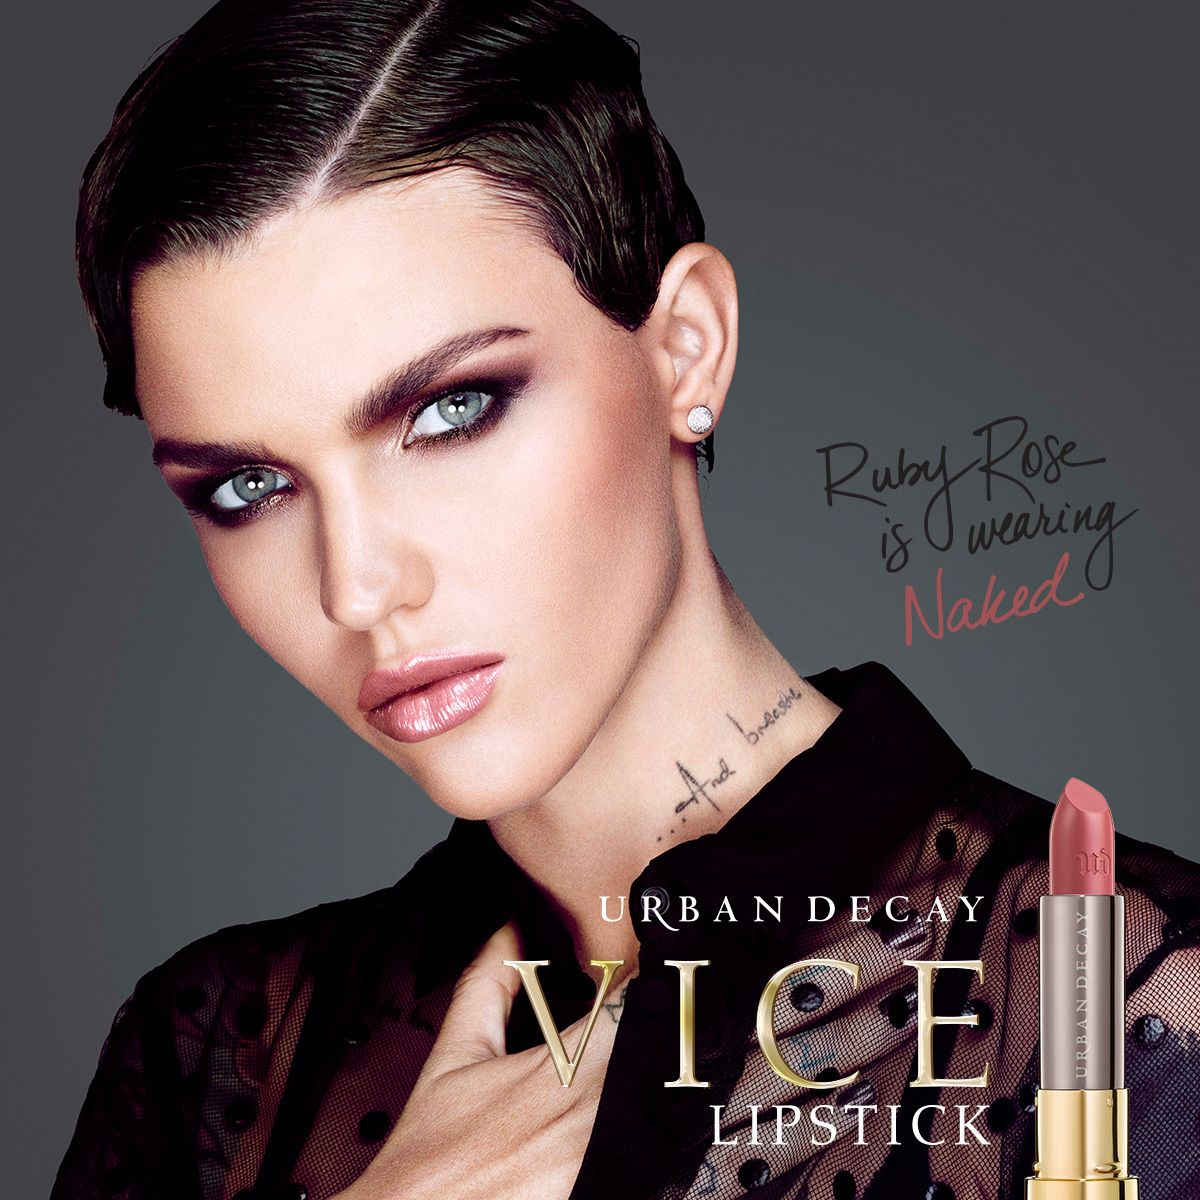 Ruby Rose wears Urban Decay's Vice lipstick in Naked